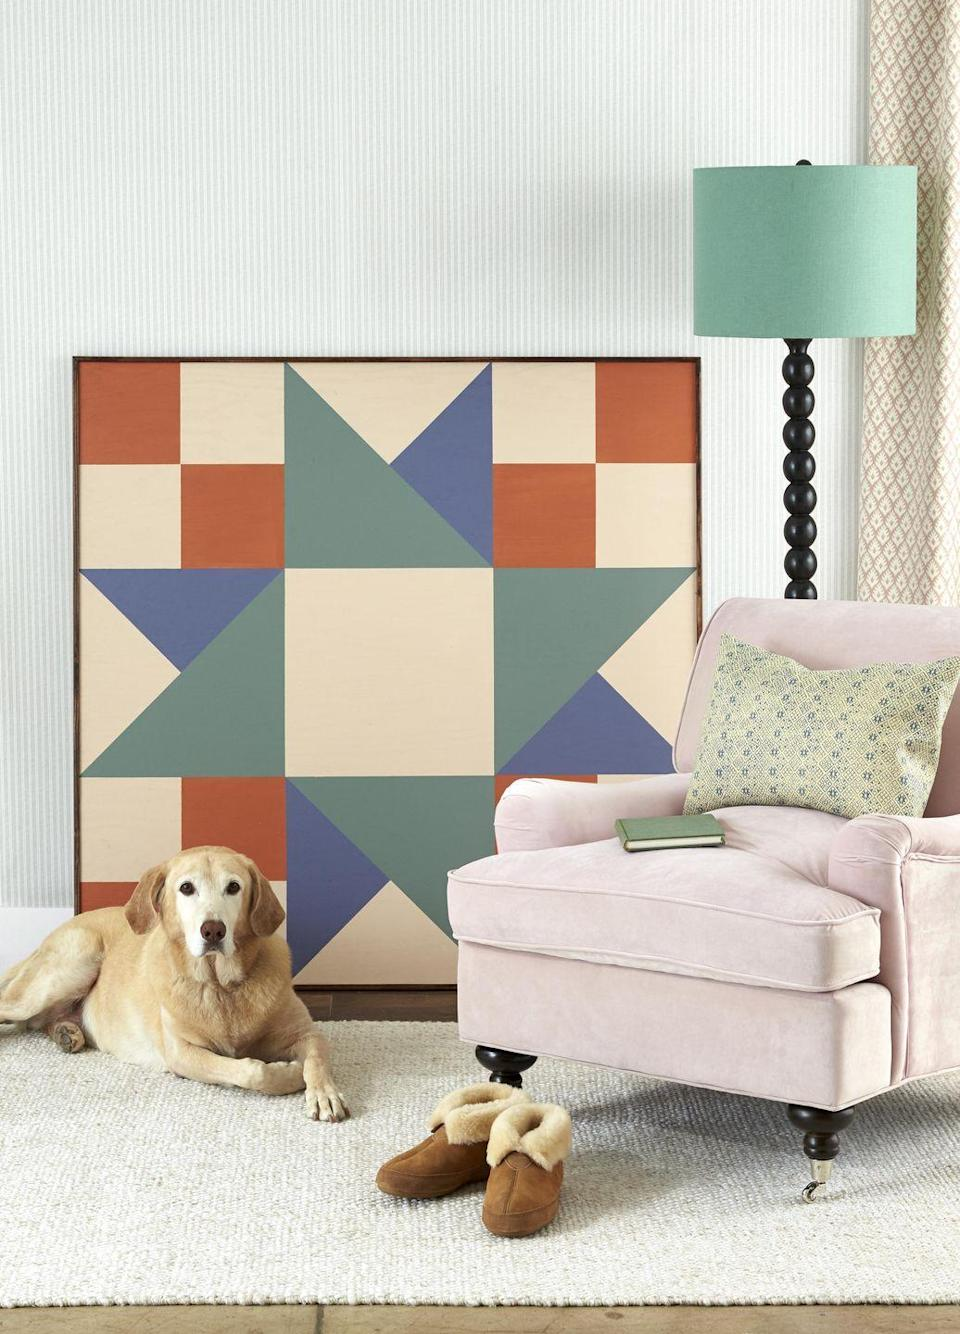 """<p>For the mom who loves to sew or just like to think about doing it one day when the kids are out of the house!<br><br><strong>To make</strong>: First, cut a piece of plywood to desired size (ours is four feet square). Draw a quilt block (here, Twin Star–style) on the wood with pencil, using a ruler or painter's tape for straight lines, then paint with acrylic paint. Nail strips of 1/2-inch trim along the edges to finish. Lean or hang on the wall.<br><a class=""""link rapid-noclick-resp"""" href=""""https://www.amazon.com/Acrylic-Pouches-Pigments-Professional-Painters/dp/B078CYZJ2C/ref=sr_1_1_sspa?tag=syn-yahoo-20&ascsubtag=%5Bartid%7C10050.g.2357%5Bsrc%7Cyahoo-us"""" rel=""""nofollow noopener"""" target=""""_blank"""" data-ylk=""""slk:SHOP PAINT"""">SHOP PAINT</a></p>"""